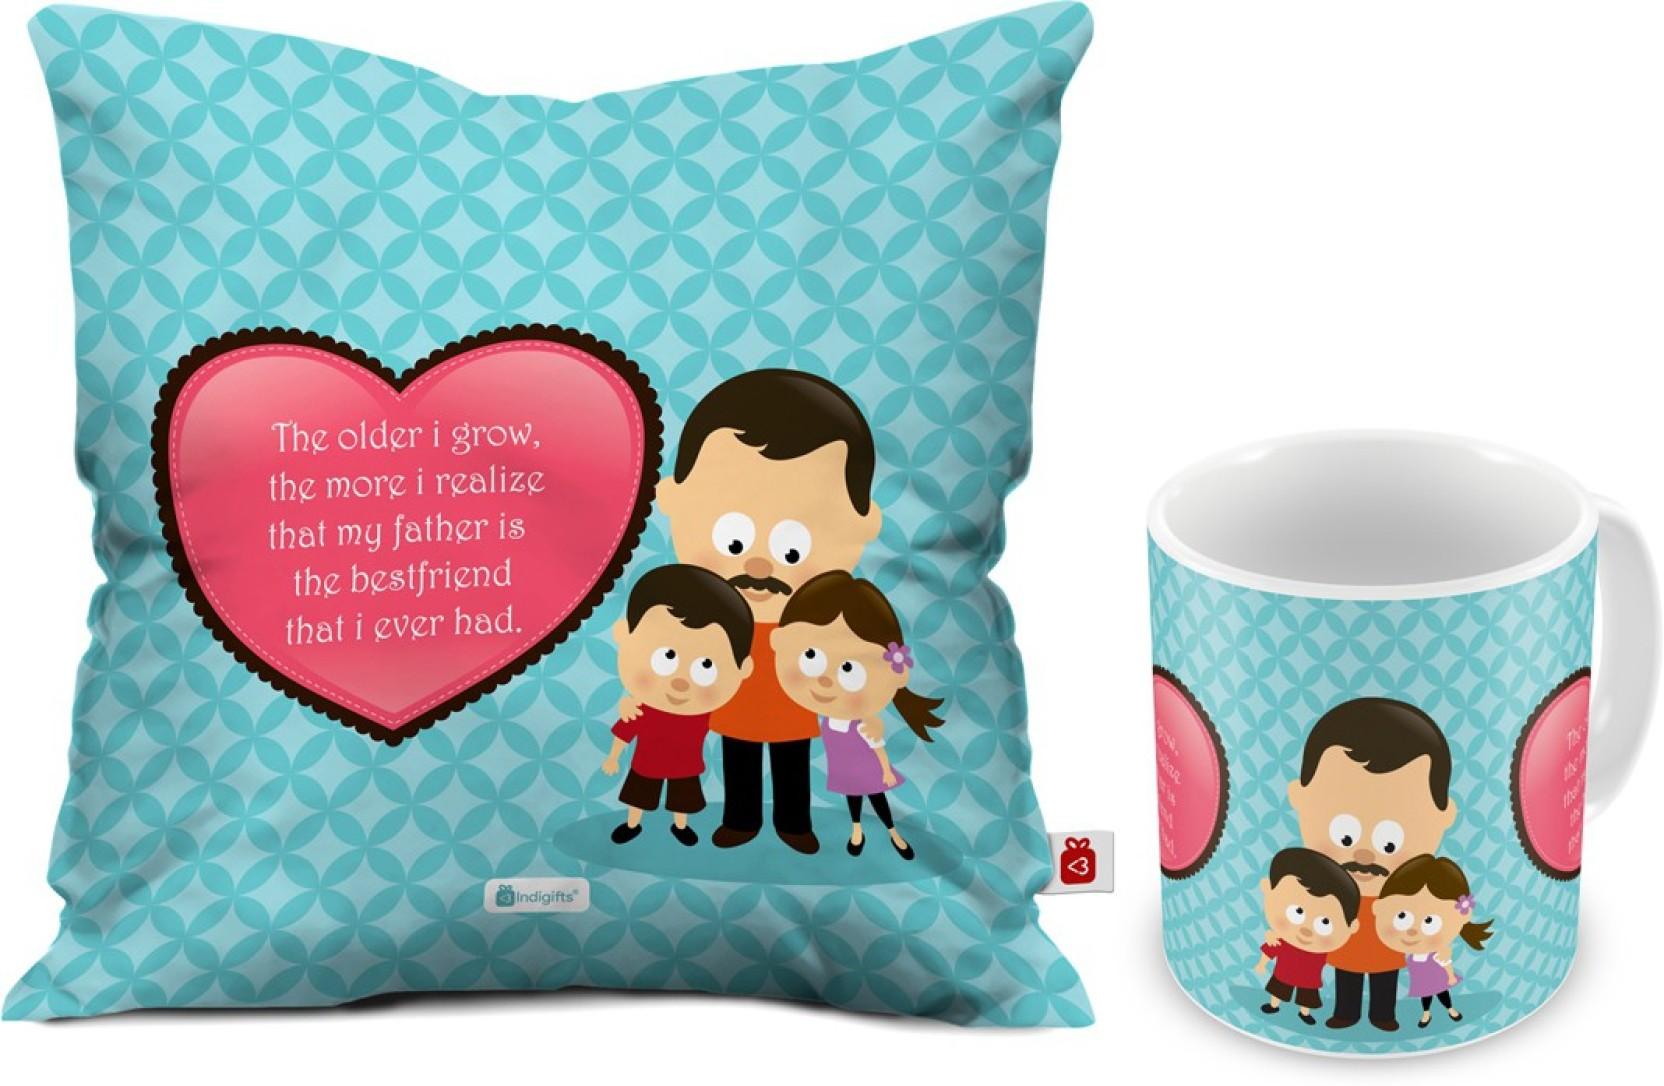 Indigifts Fathers Birthday Gift For Papa Dad Gifts Parents Anniversary Mom Father Is My Best Friend Quote Cushion